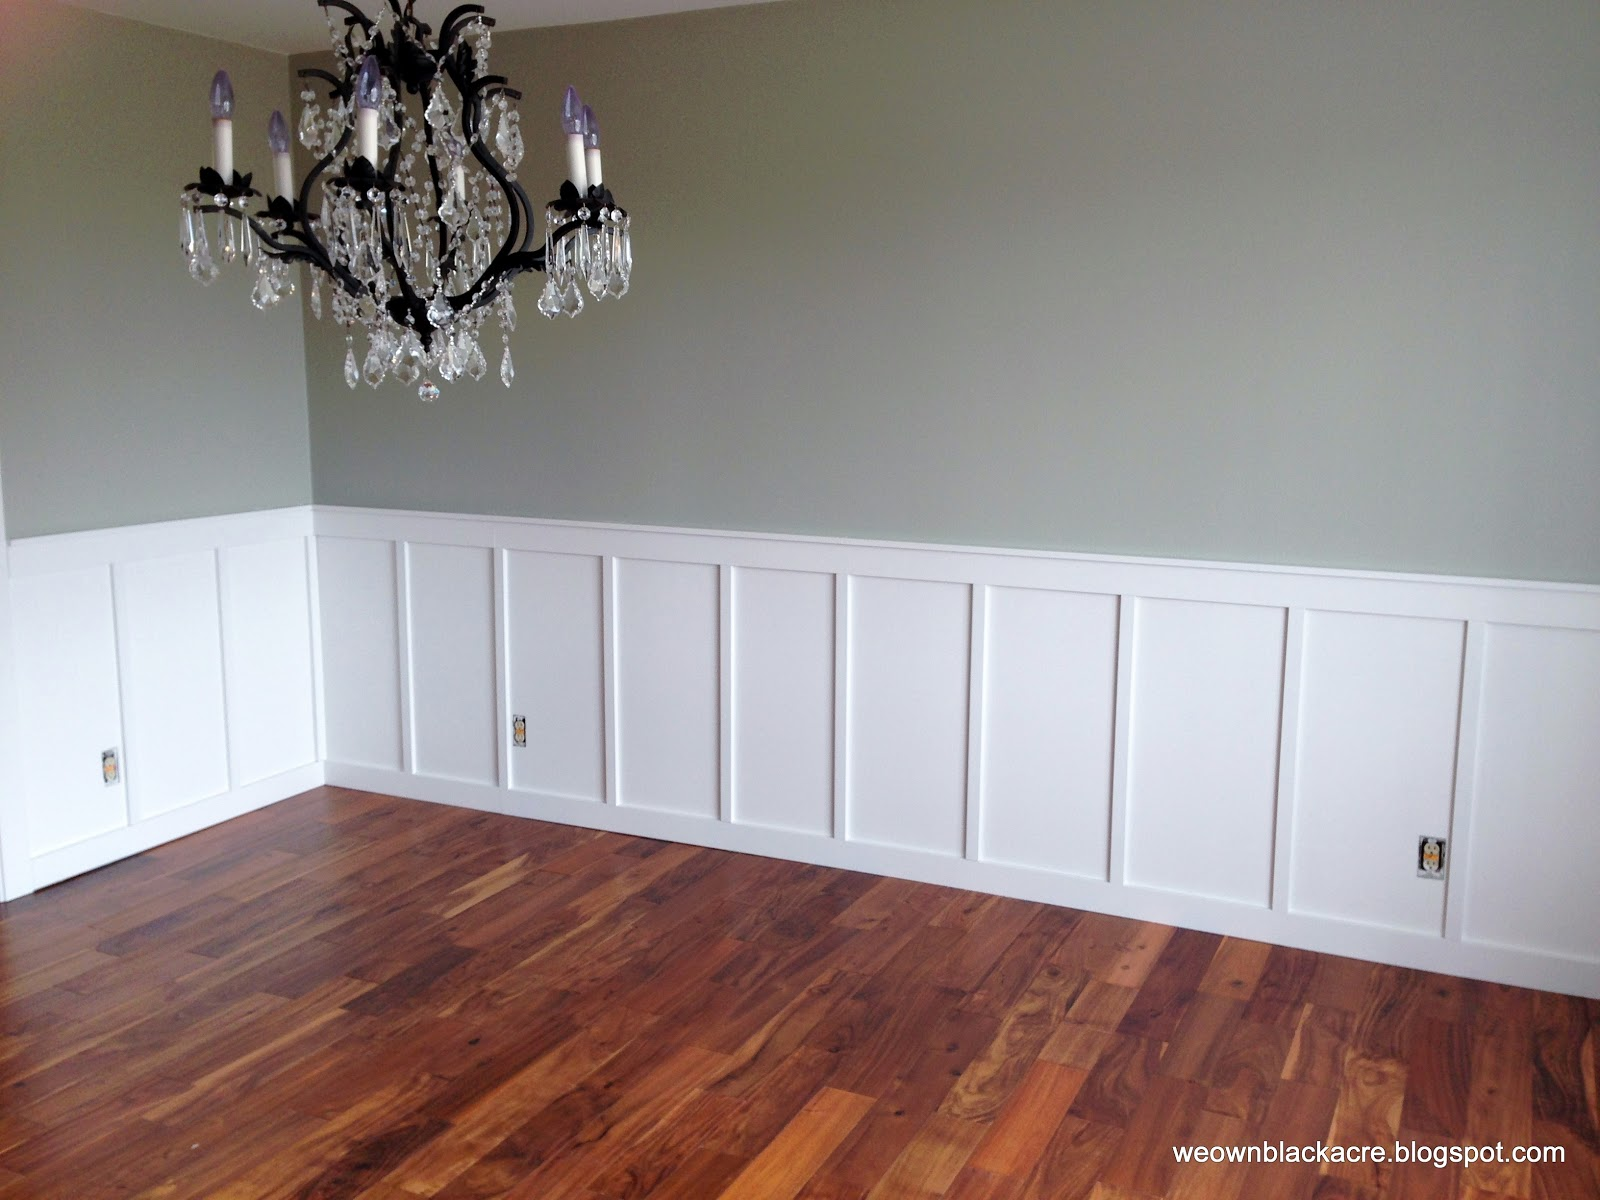 4x8 Paneling For Walls Indoors : Interior wall paneling home depot